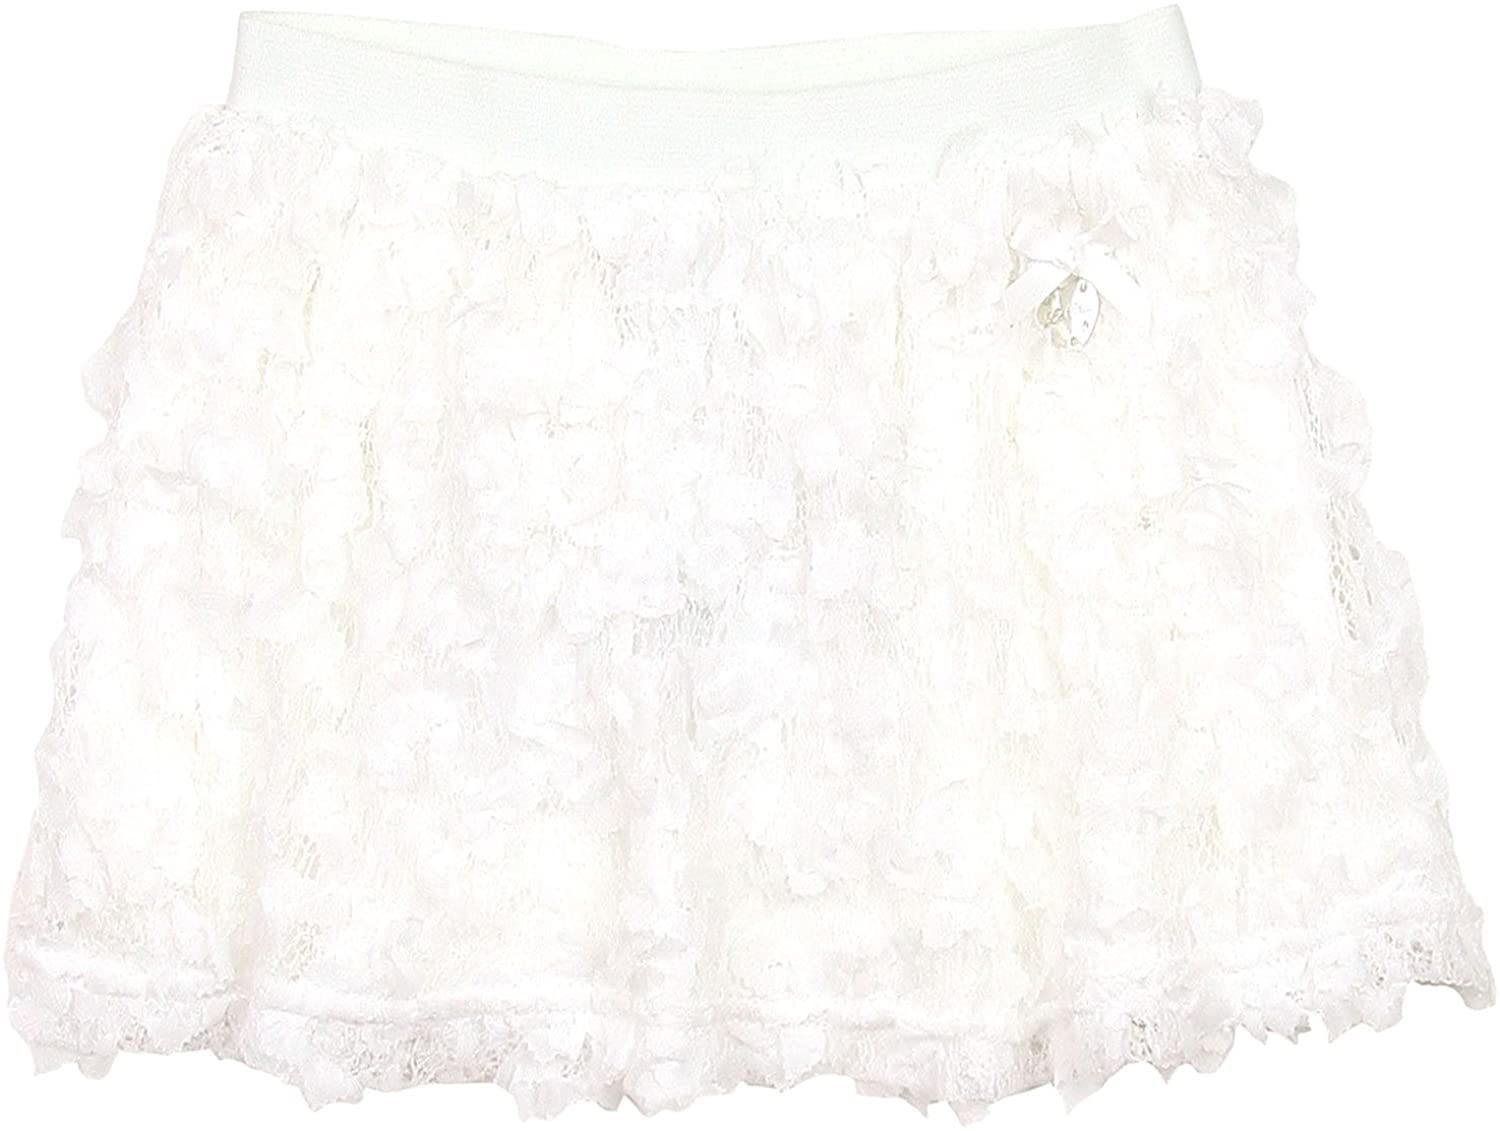 Le Chic Baby Girl's Skirt with Chiffon Ruffles, Sizes 12-24M